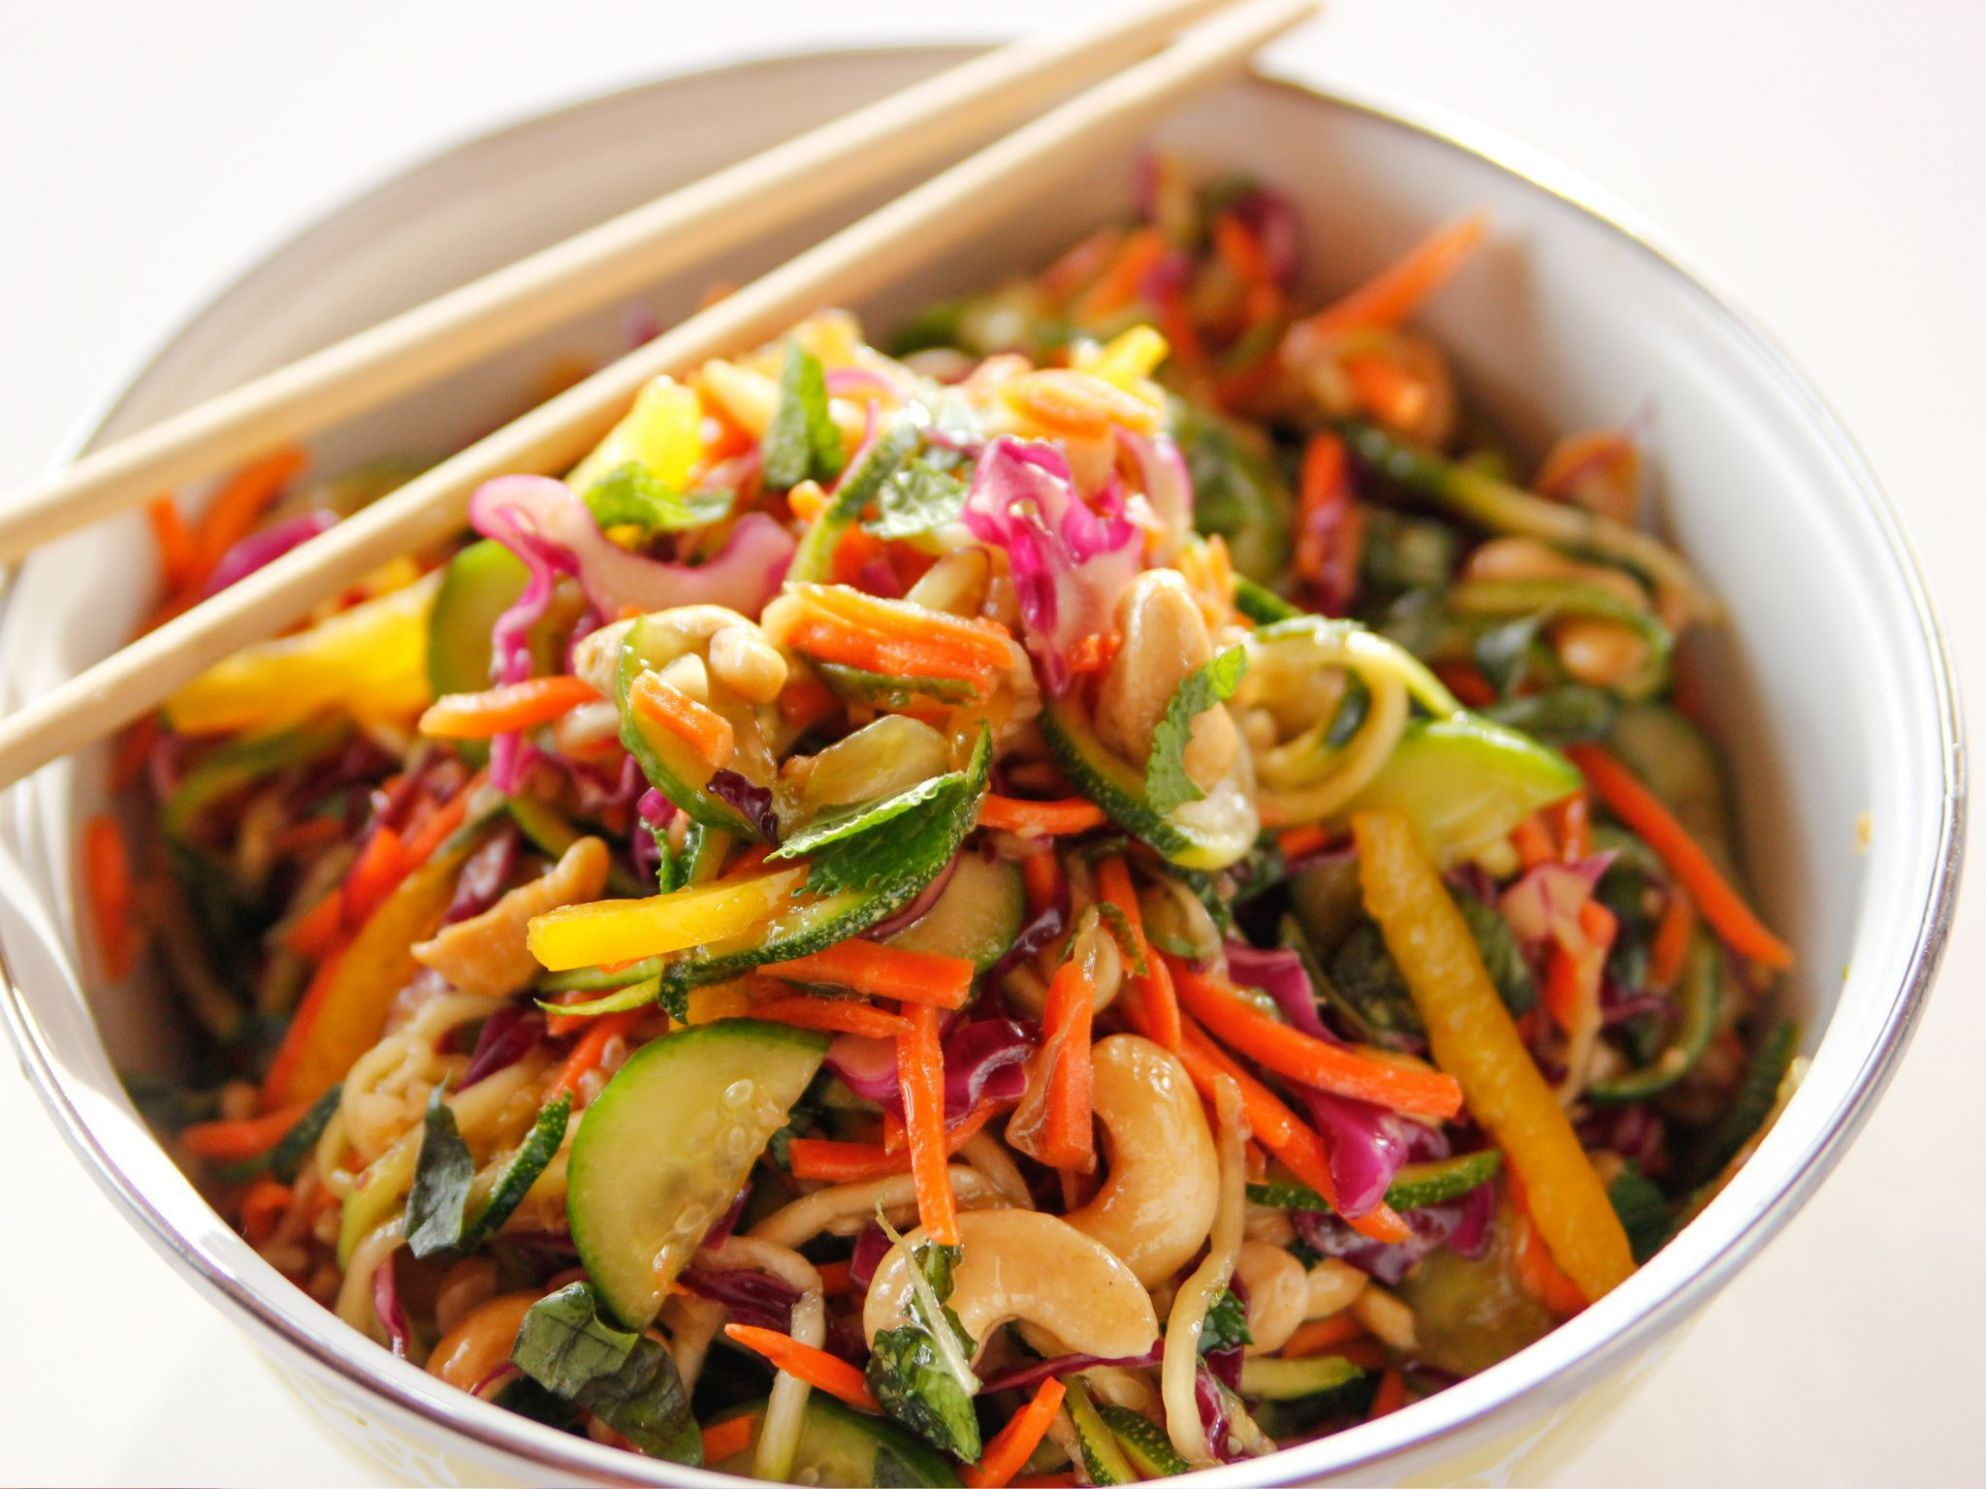 Lighter Asian Noodle Salad - Healthy Recipes Ree Drummond